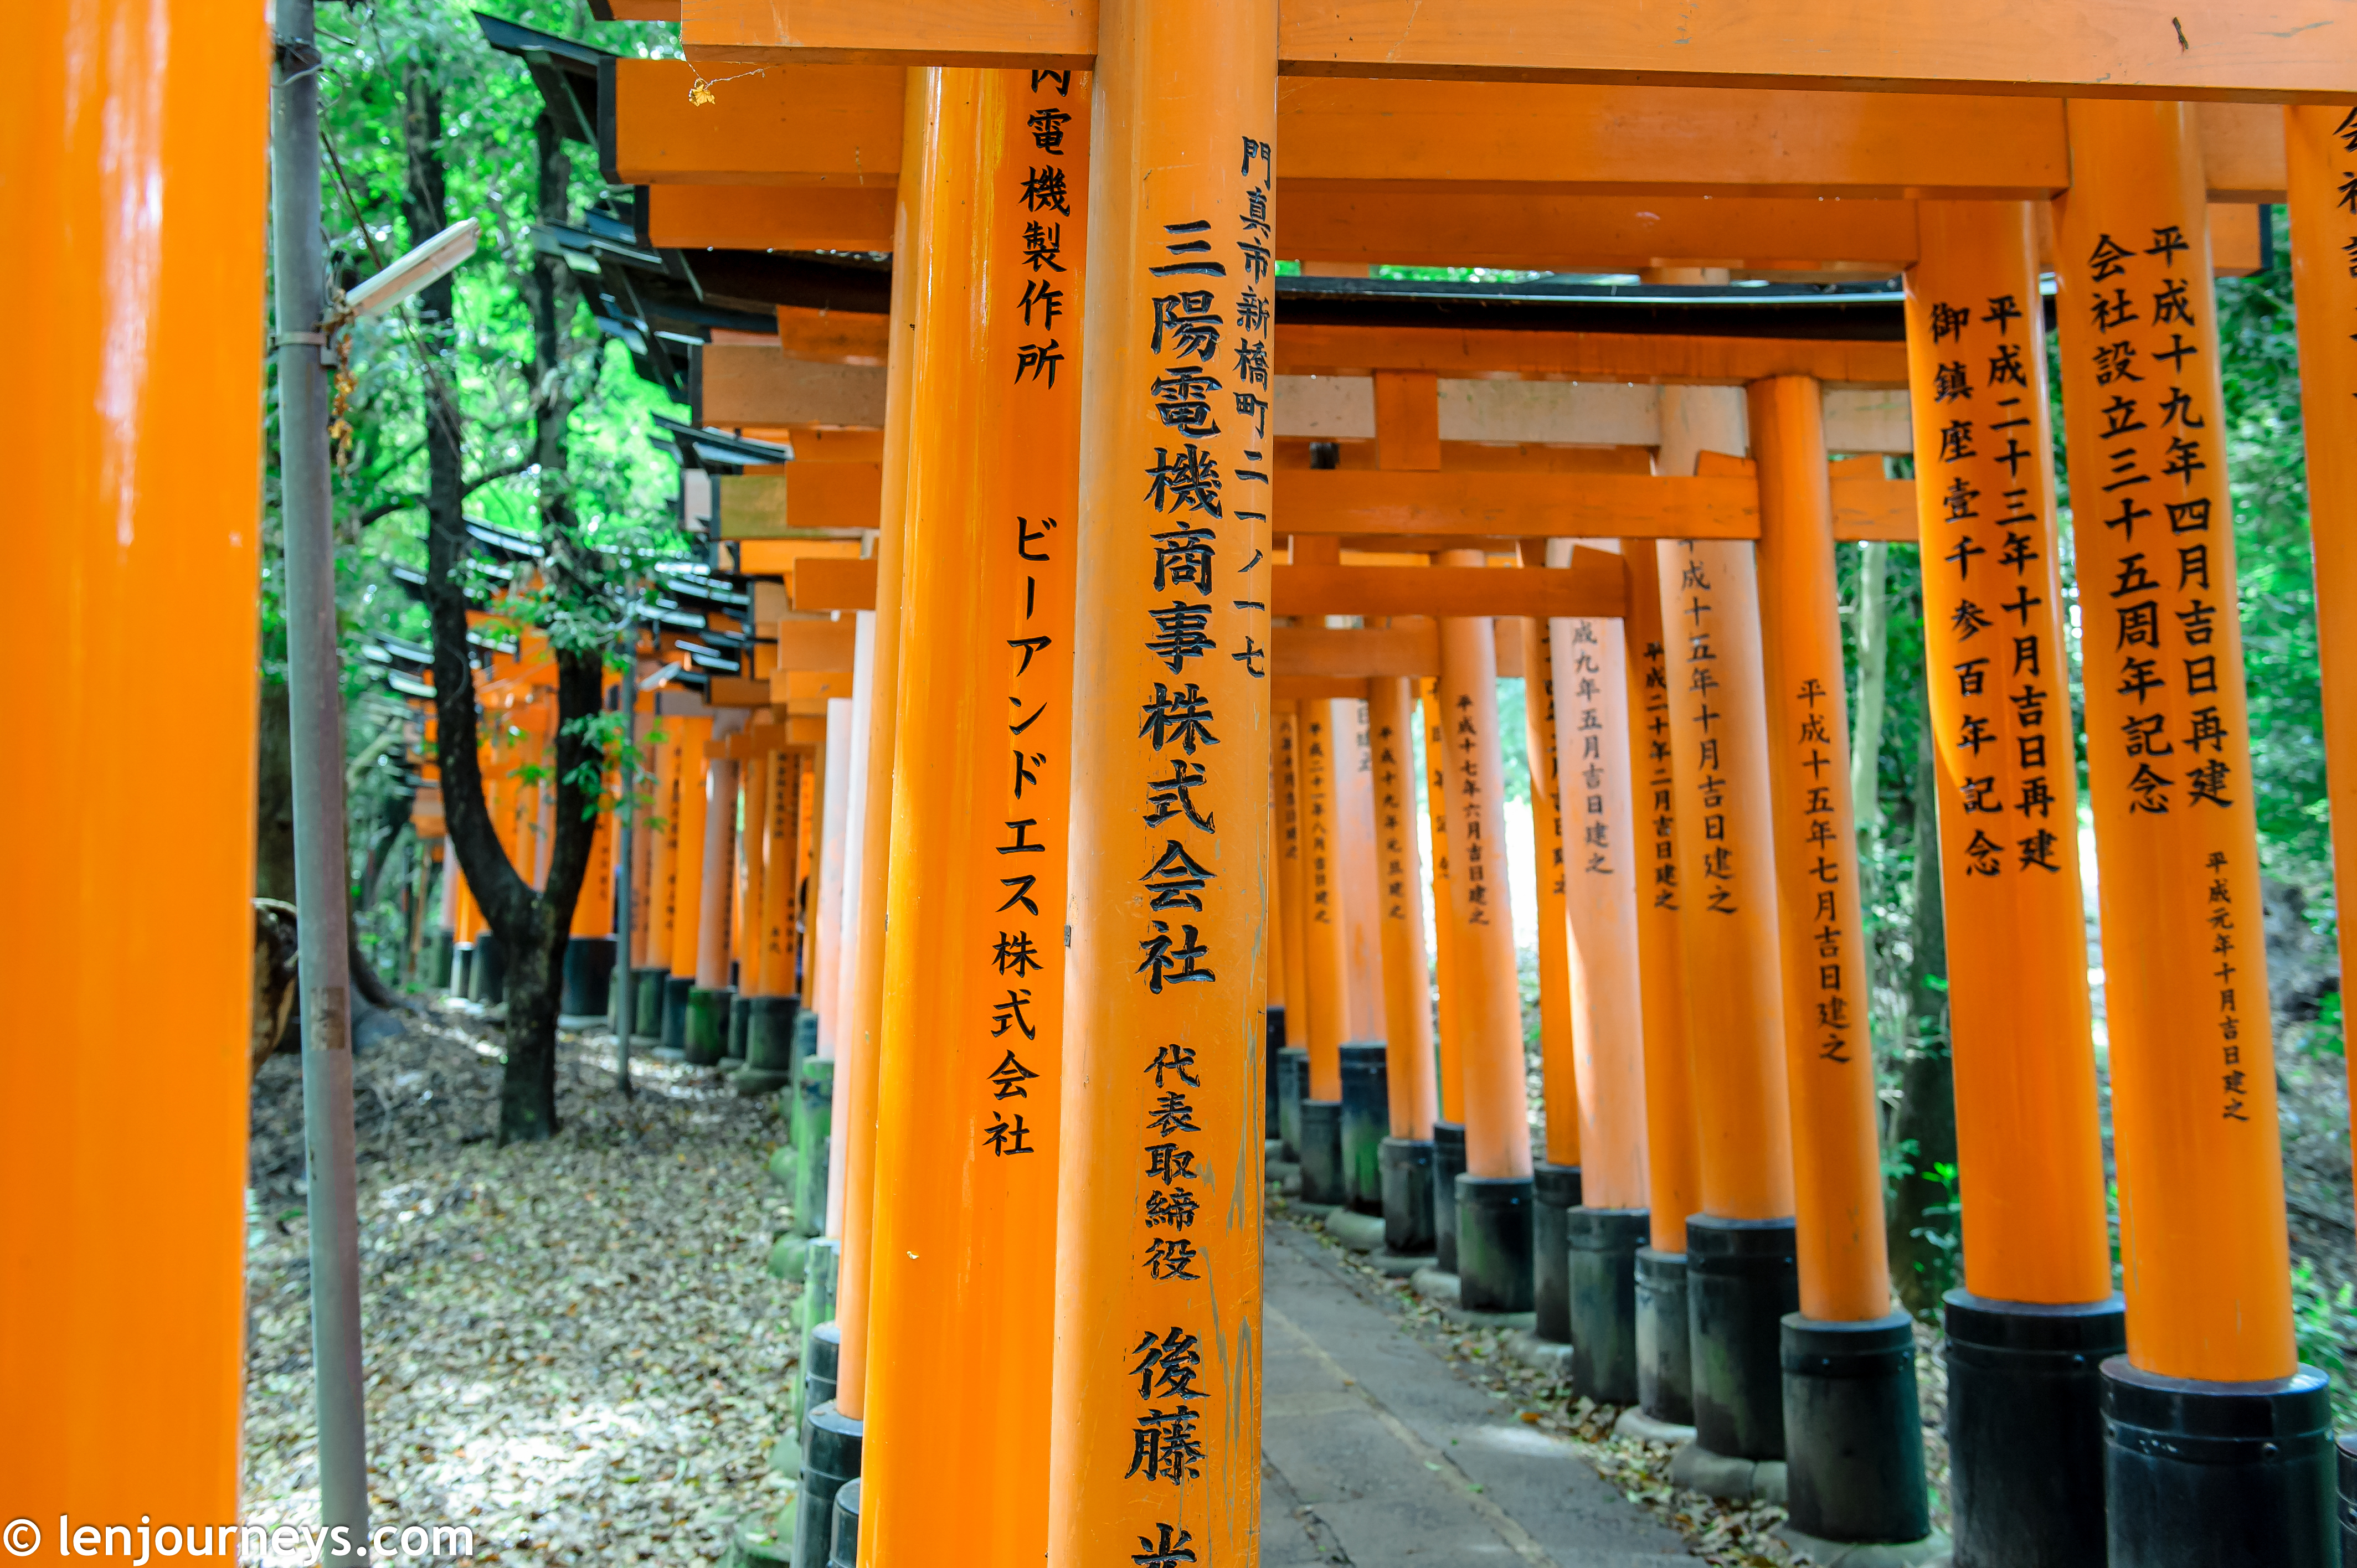 Inscription on the torii: donator's name and date